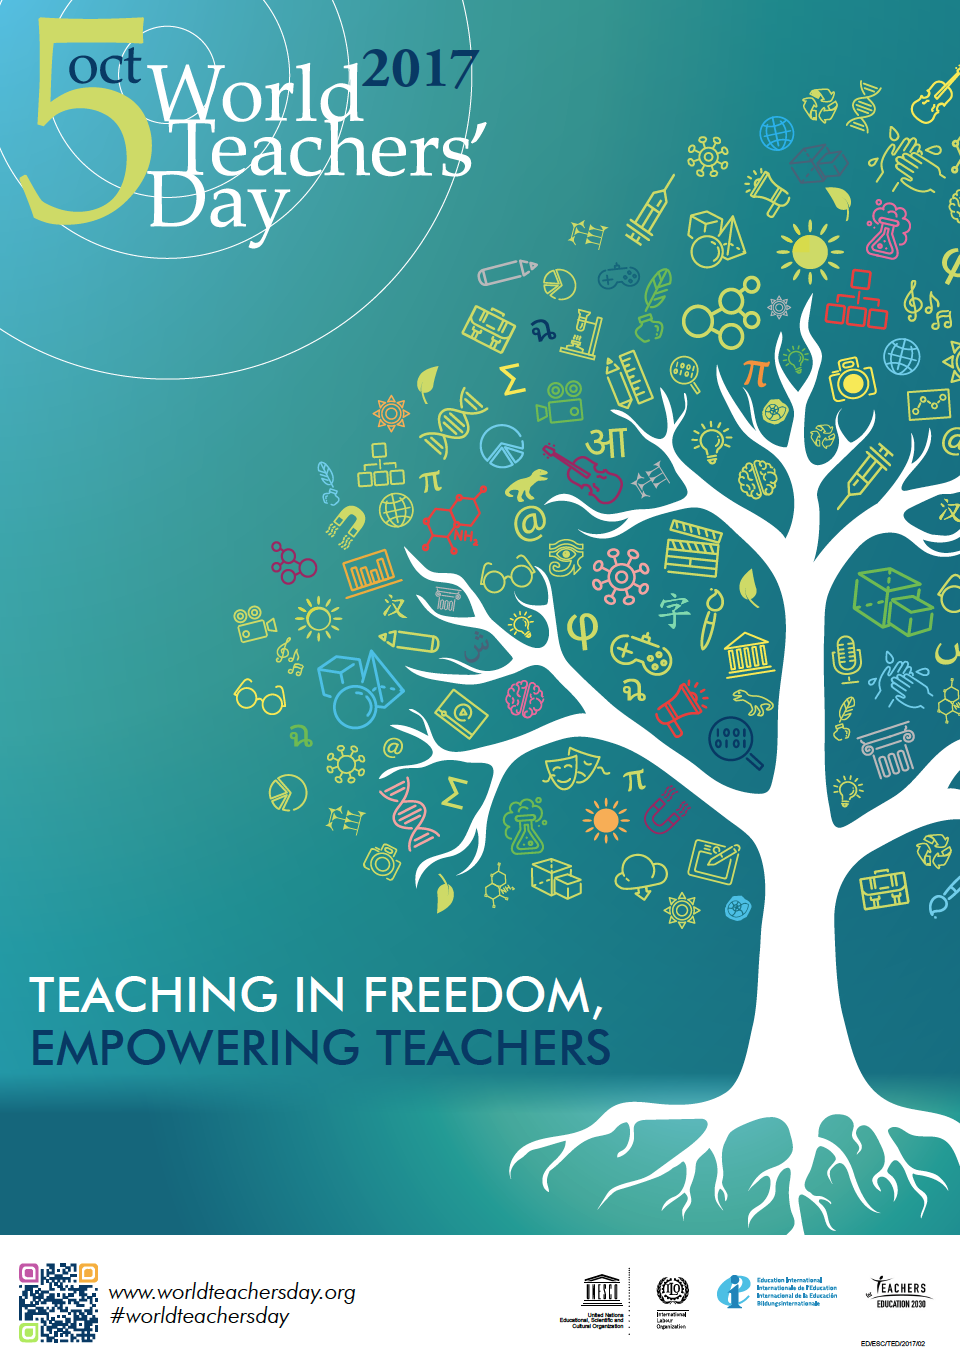 October 5th is World Teachers' Day